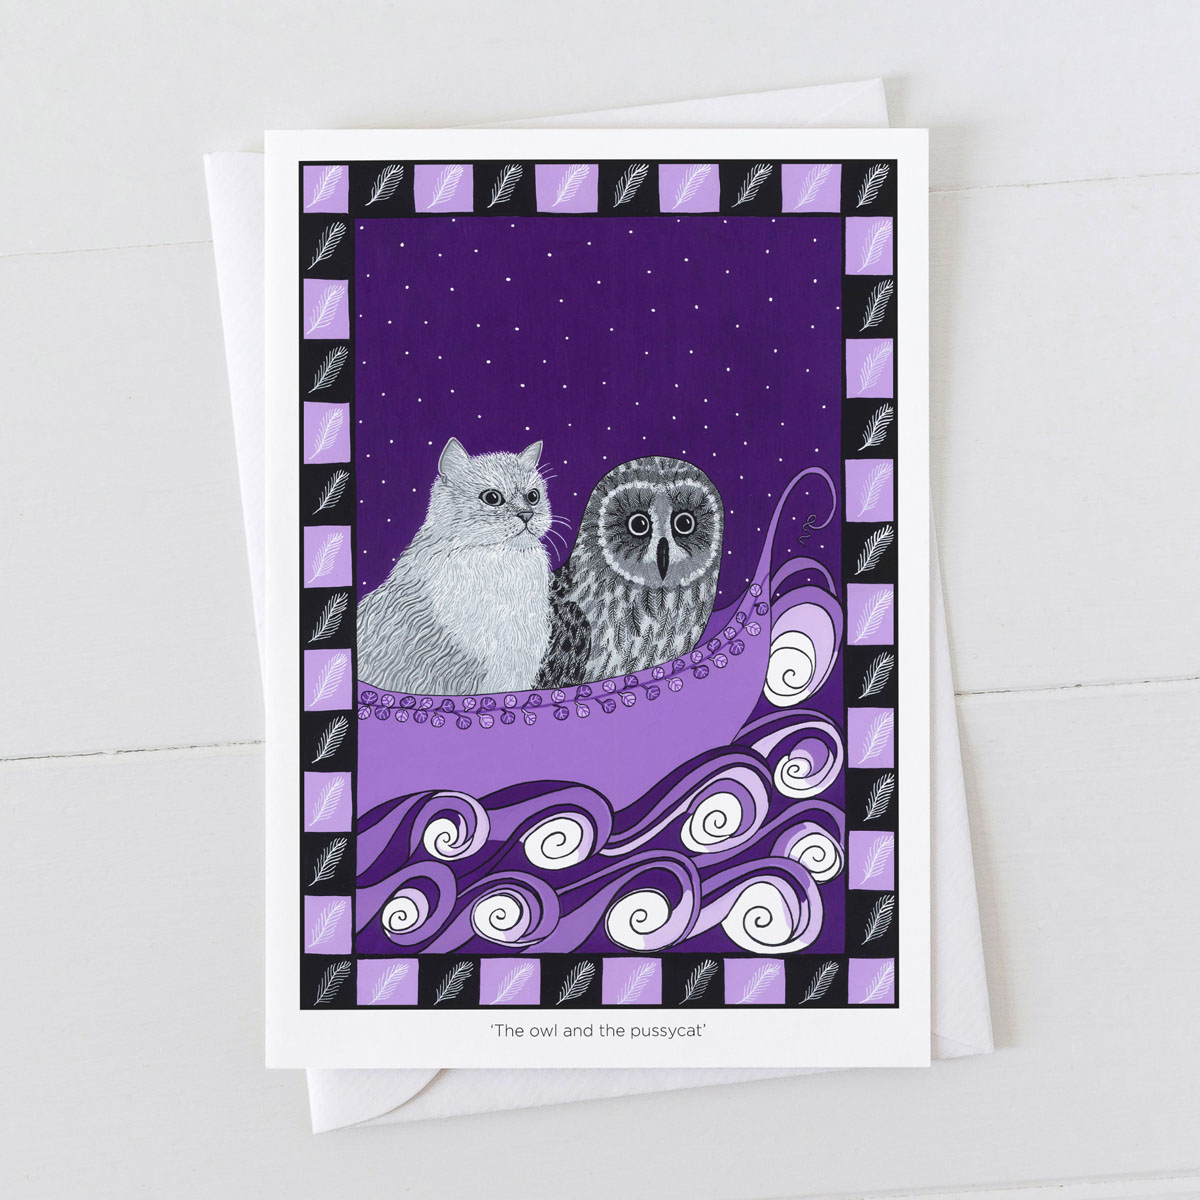 The Owl And The Pussy Cat Nursery Rhyme Greeting Card